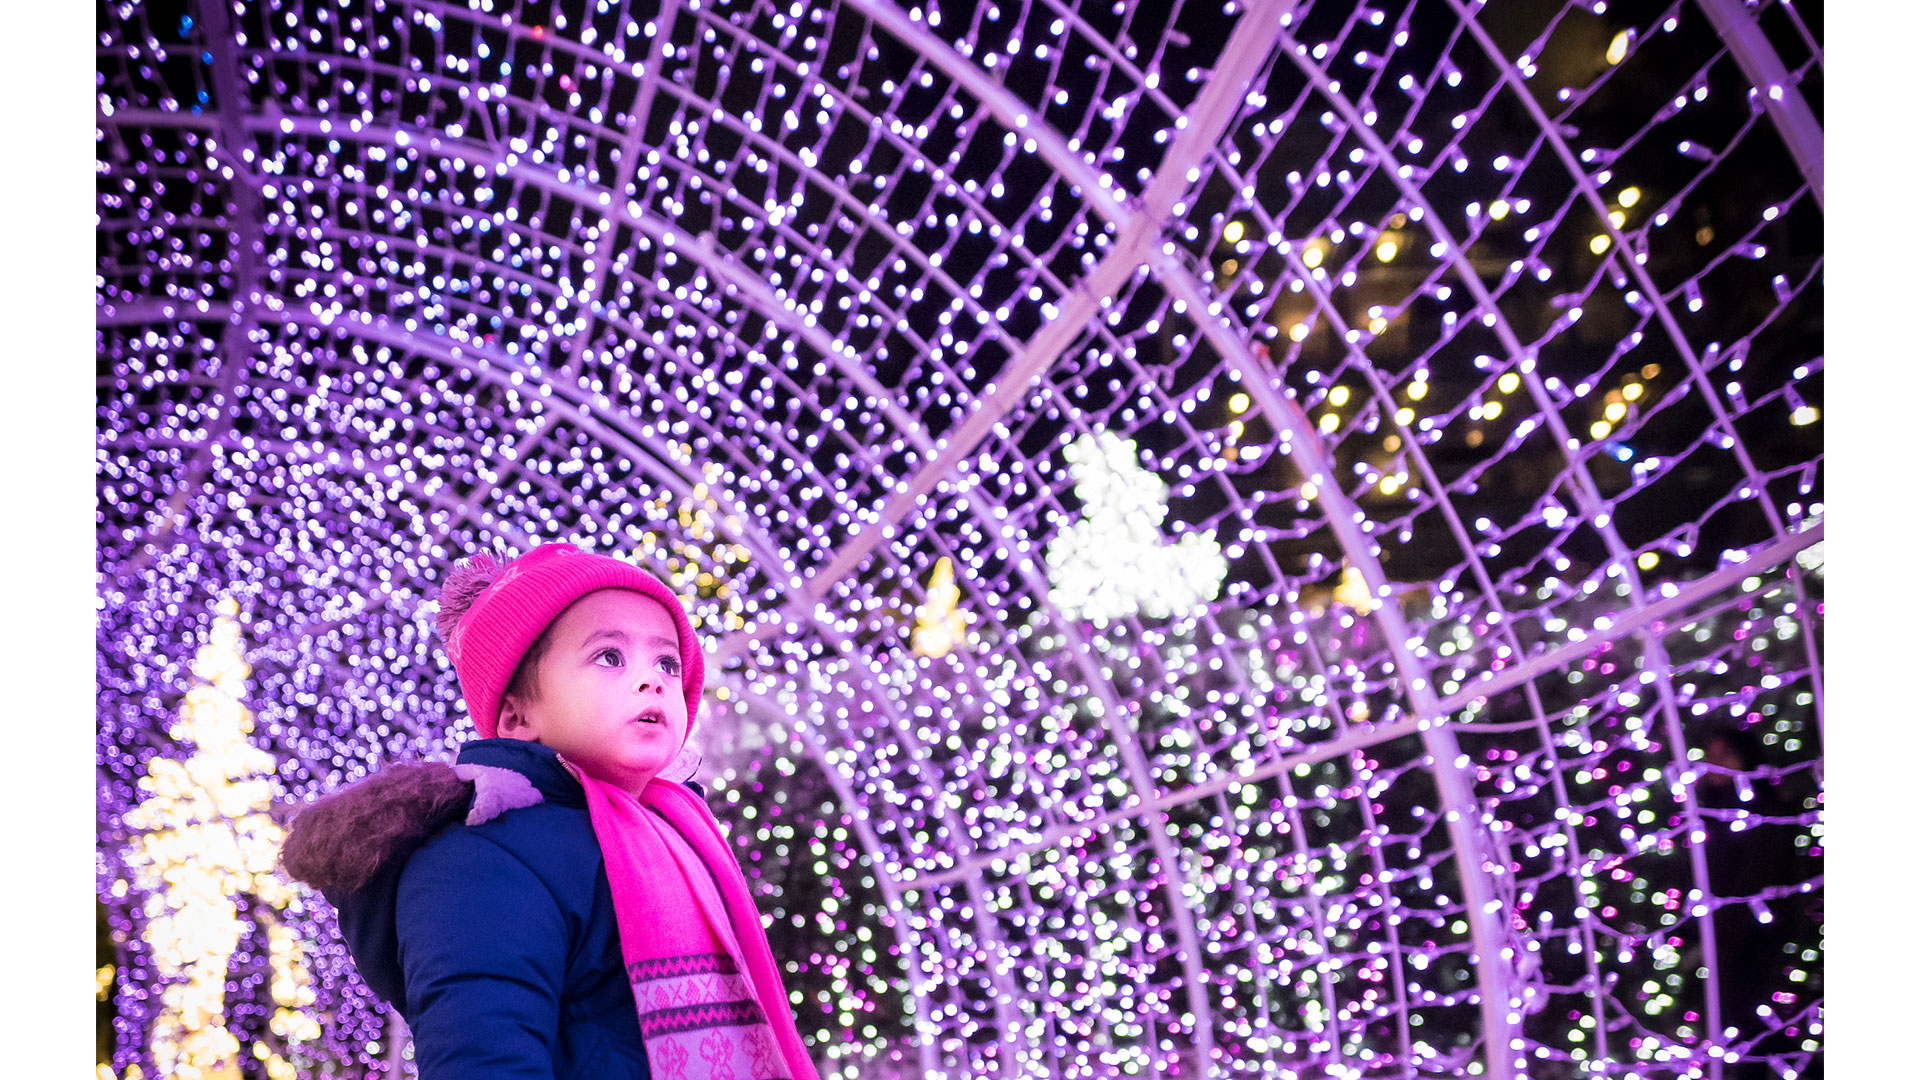 WATCH: Tickets for the World's Largest Christmas Light Maze Are on Sale Now